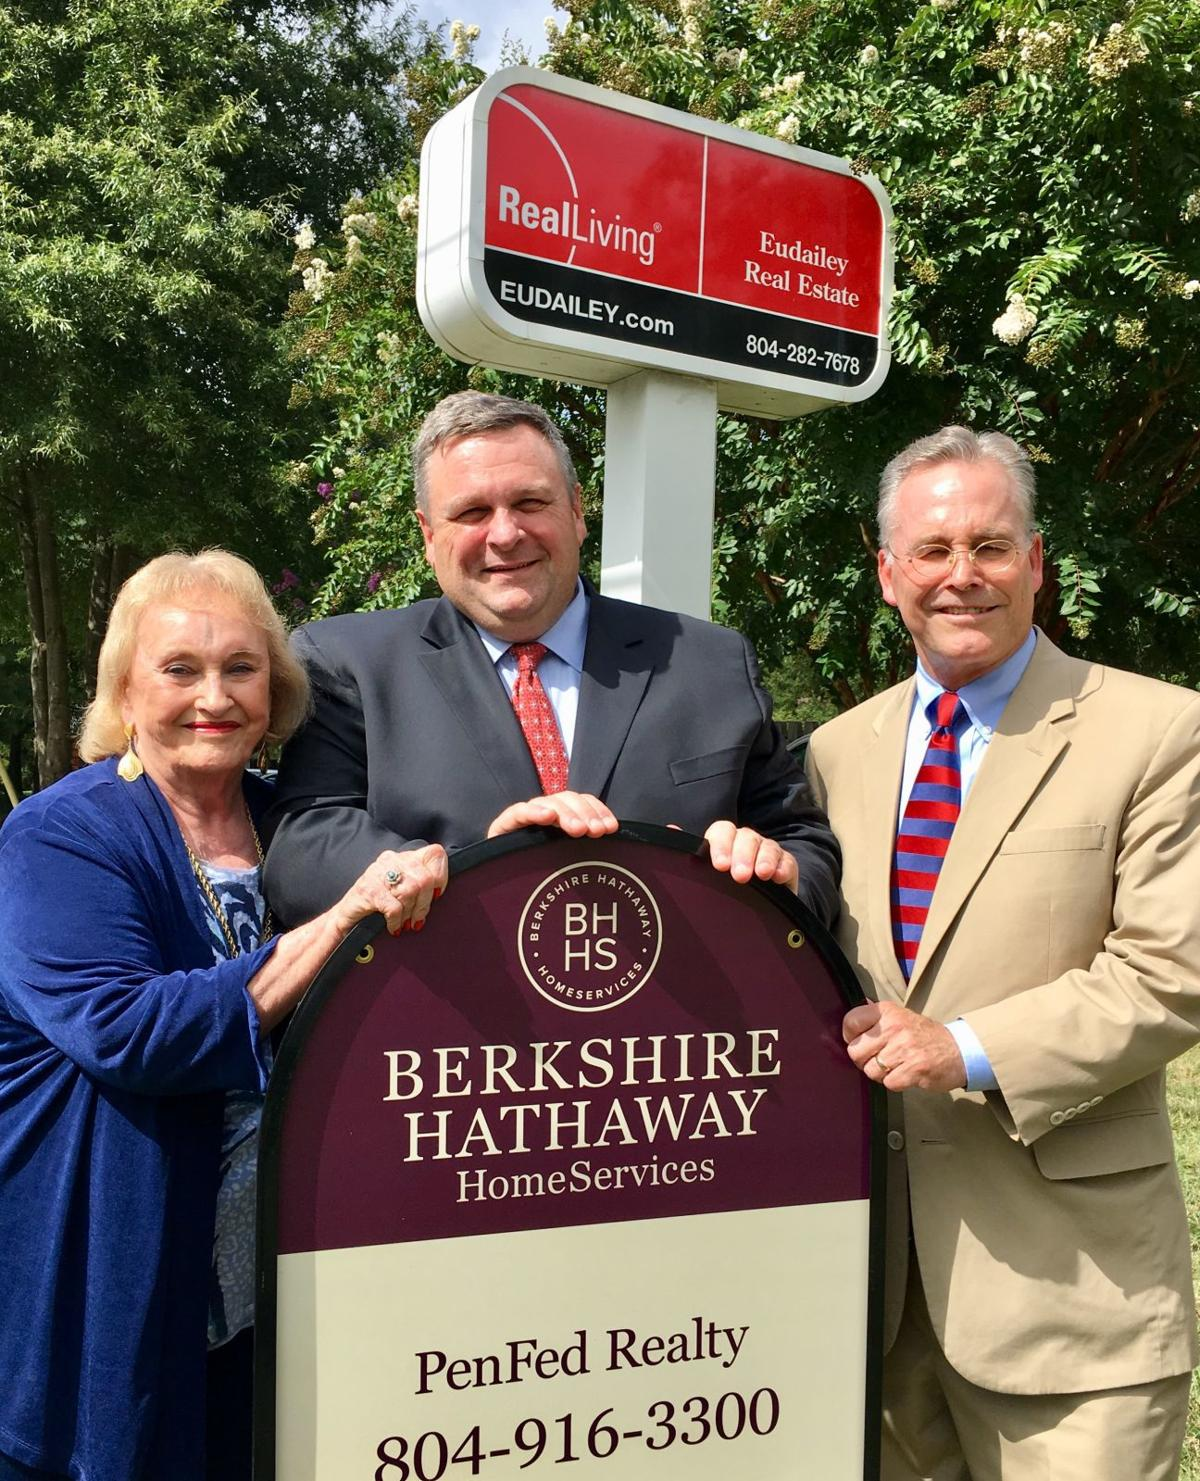 Eudailey Real Estate business sells to Berkshire Hathaway HomeServices PenFed Realty